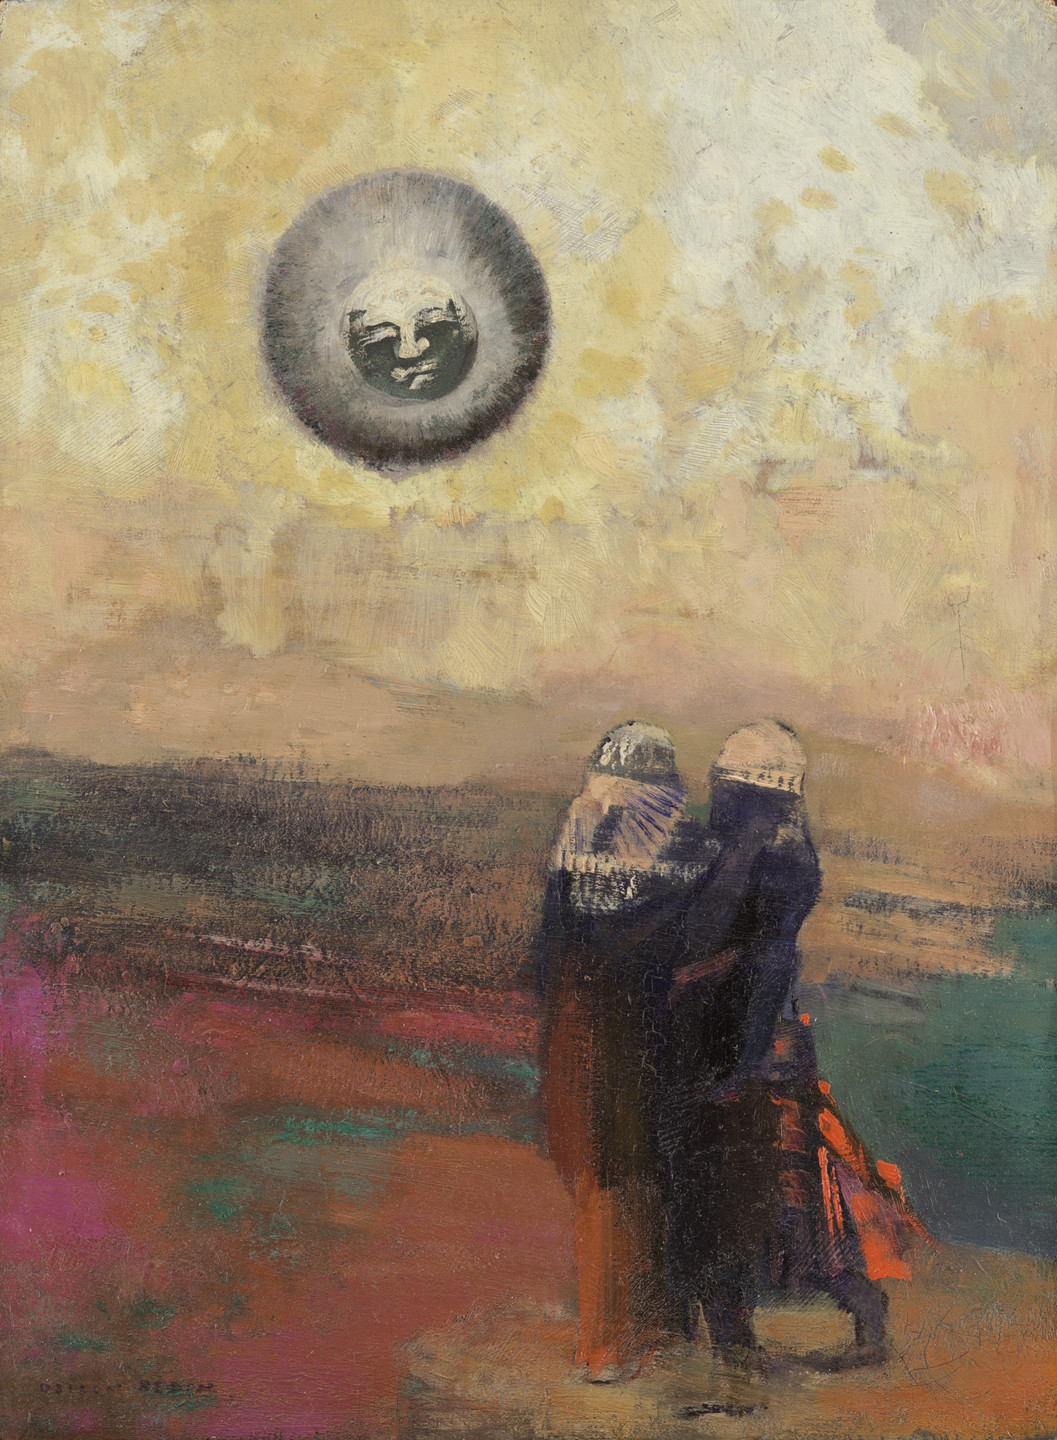 Odilon Redon. The Black Sun. c. 1900